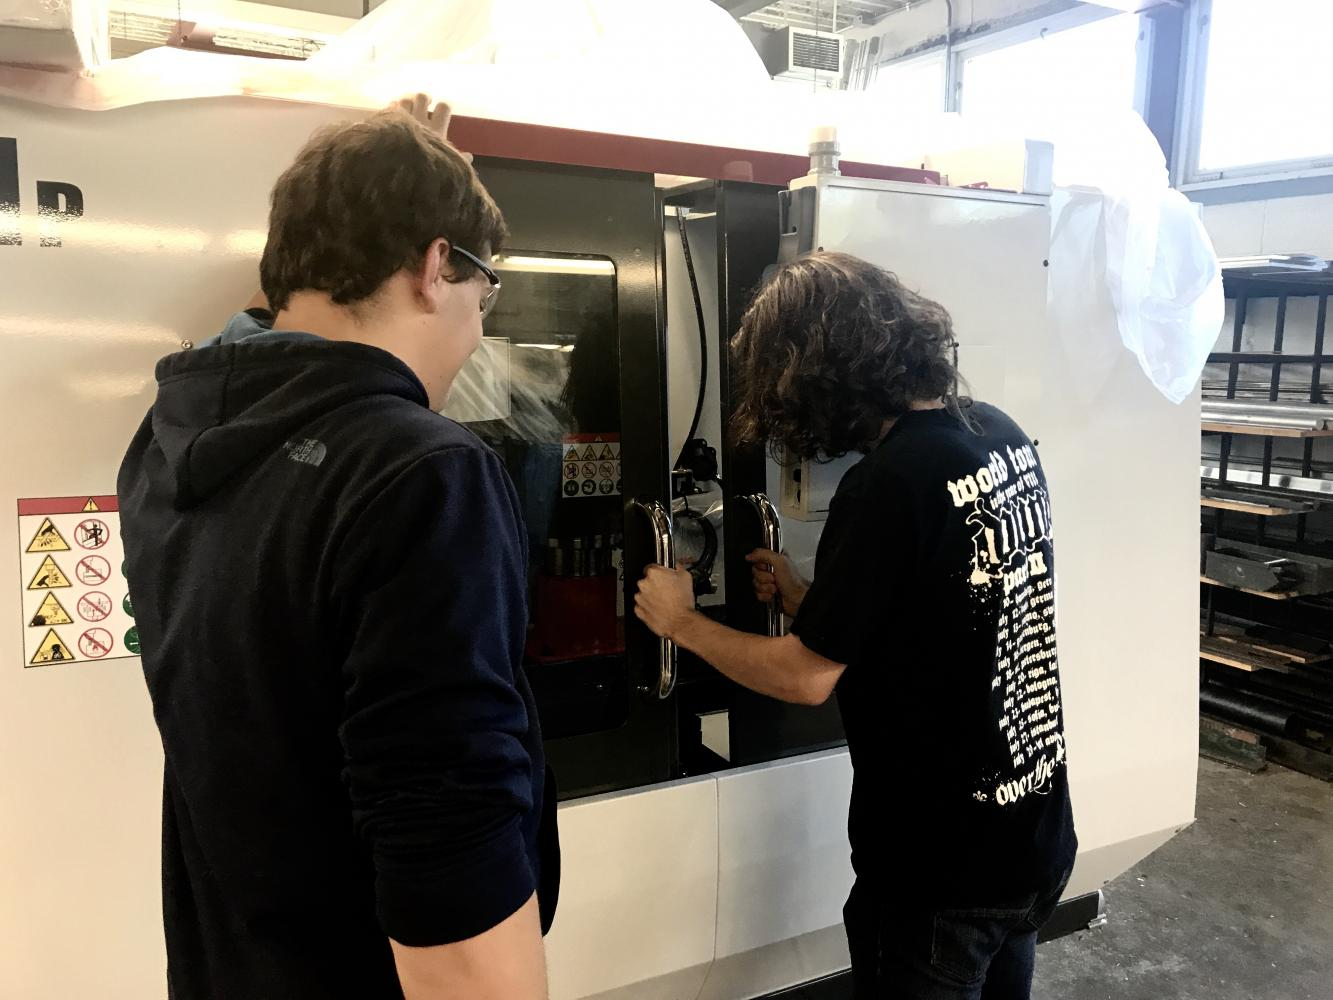 Vocational students huddle around new equipment.